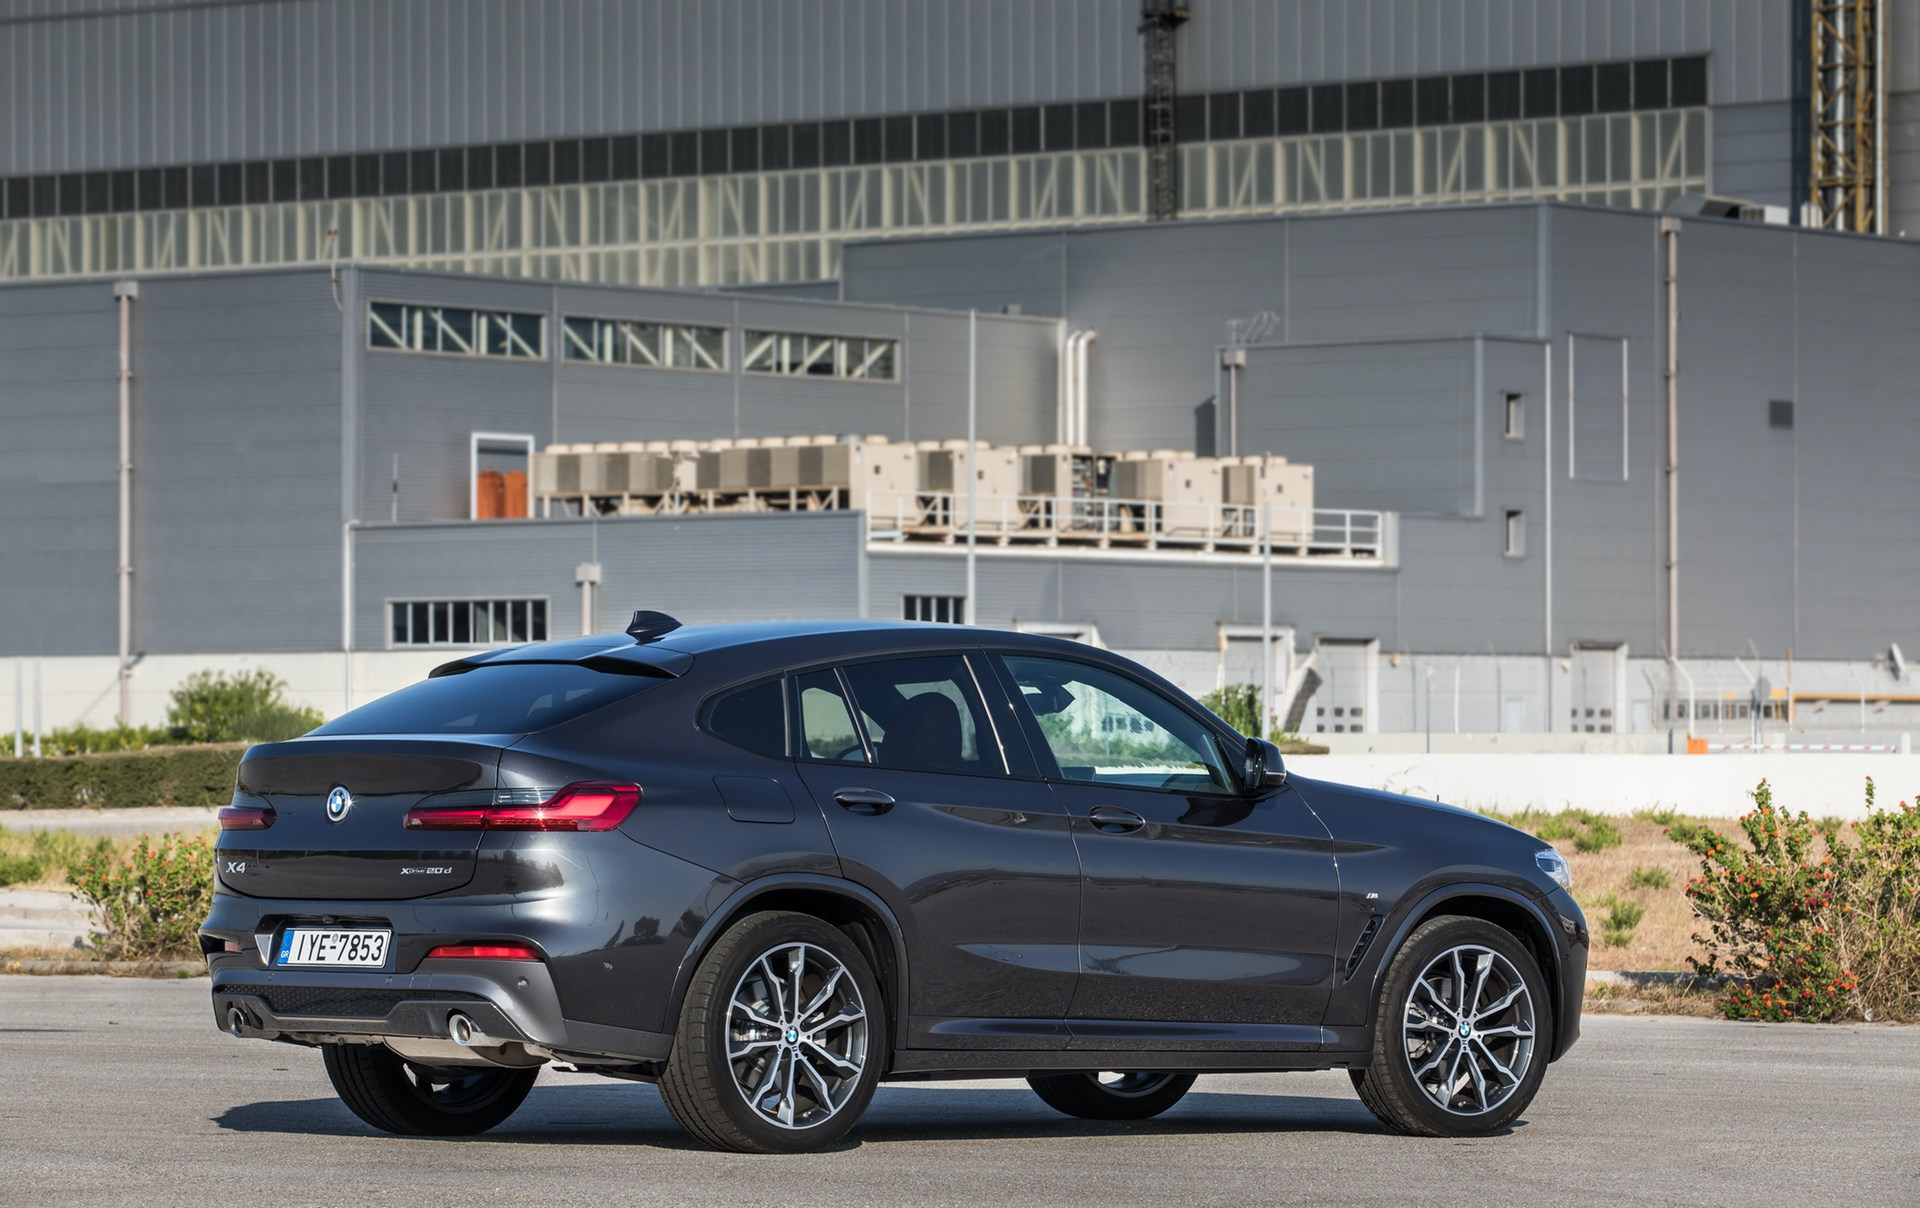 BMW_X4_greek_presskit_0049